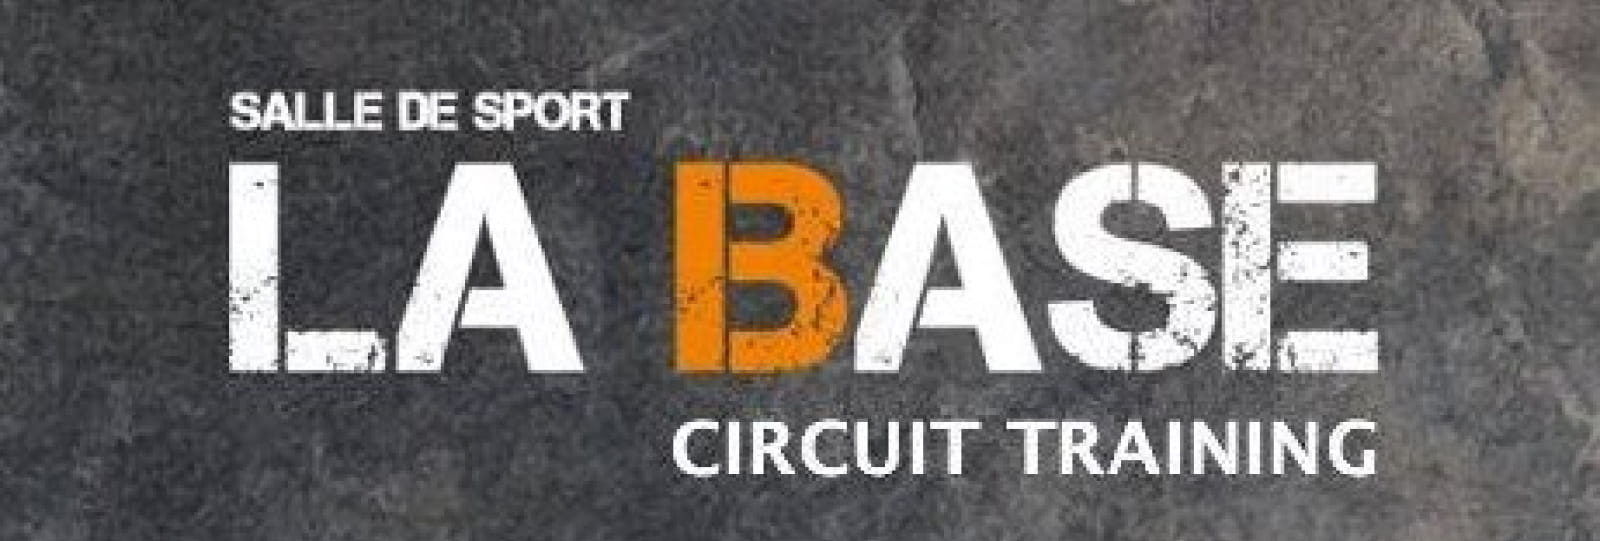 La Base - Circuit training